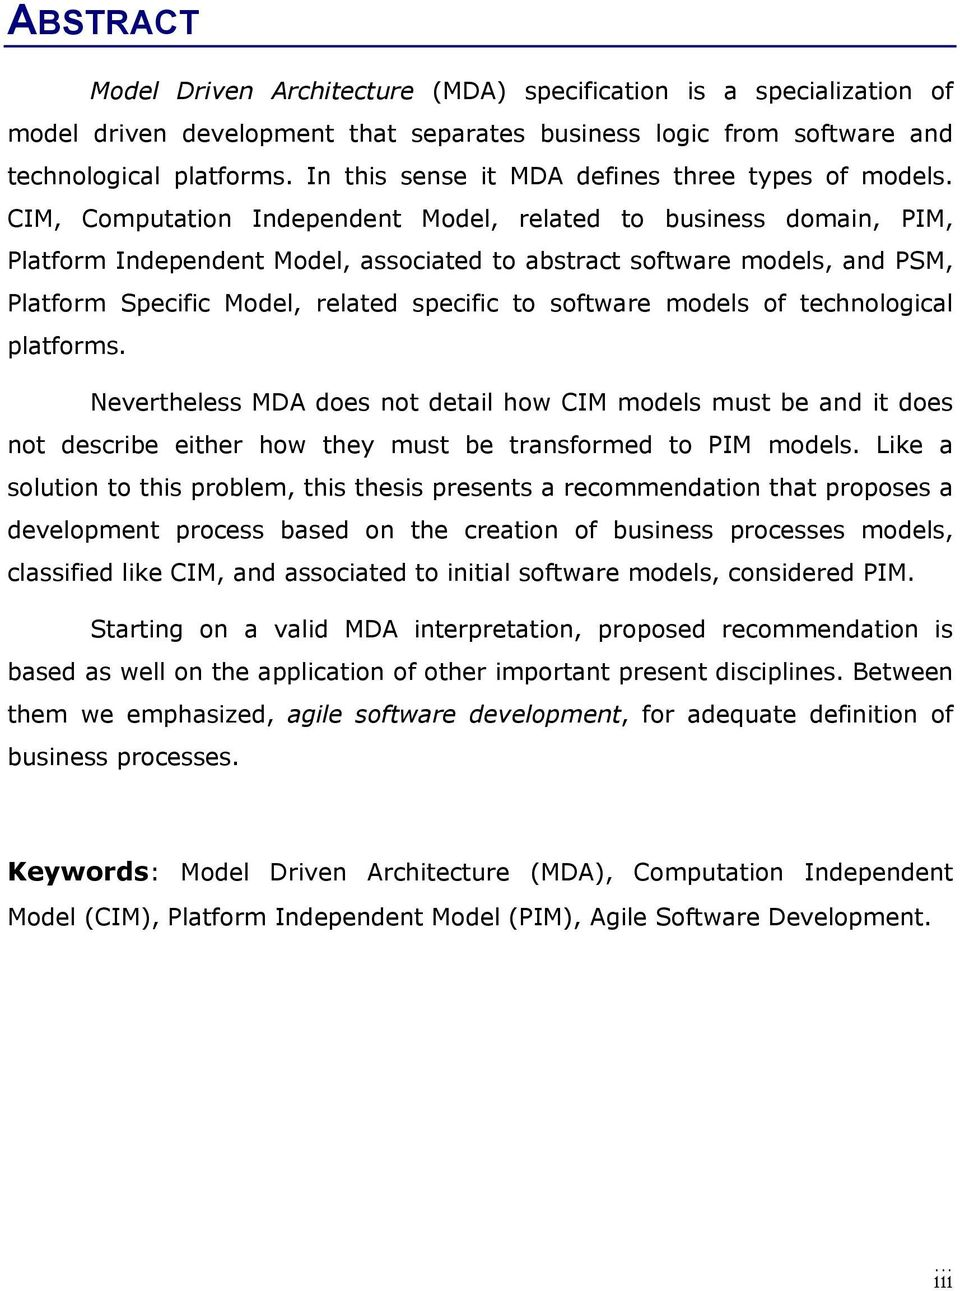 CIM, Computation Independent Model, related to business domain, PIM, Platform Independent Model, associated to abstract software models, and PSM, Platform Specific Model, related specific to software